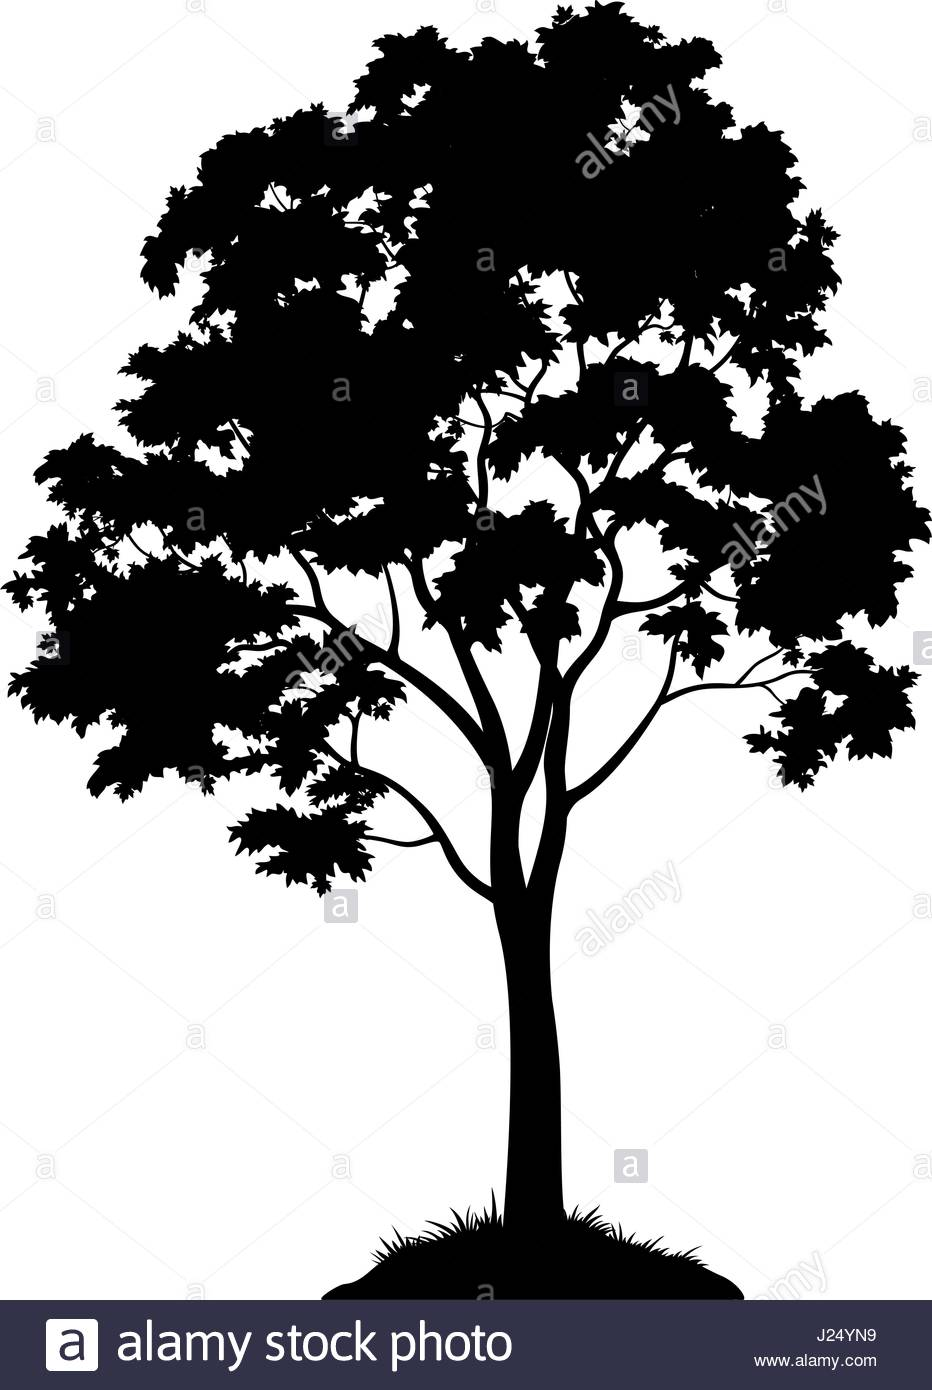 932x1390 Maple Tree Silhouette Stock Vector Art Amp Illustration, Vector